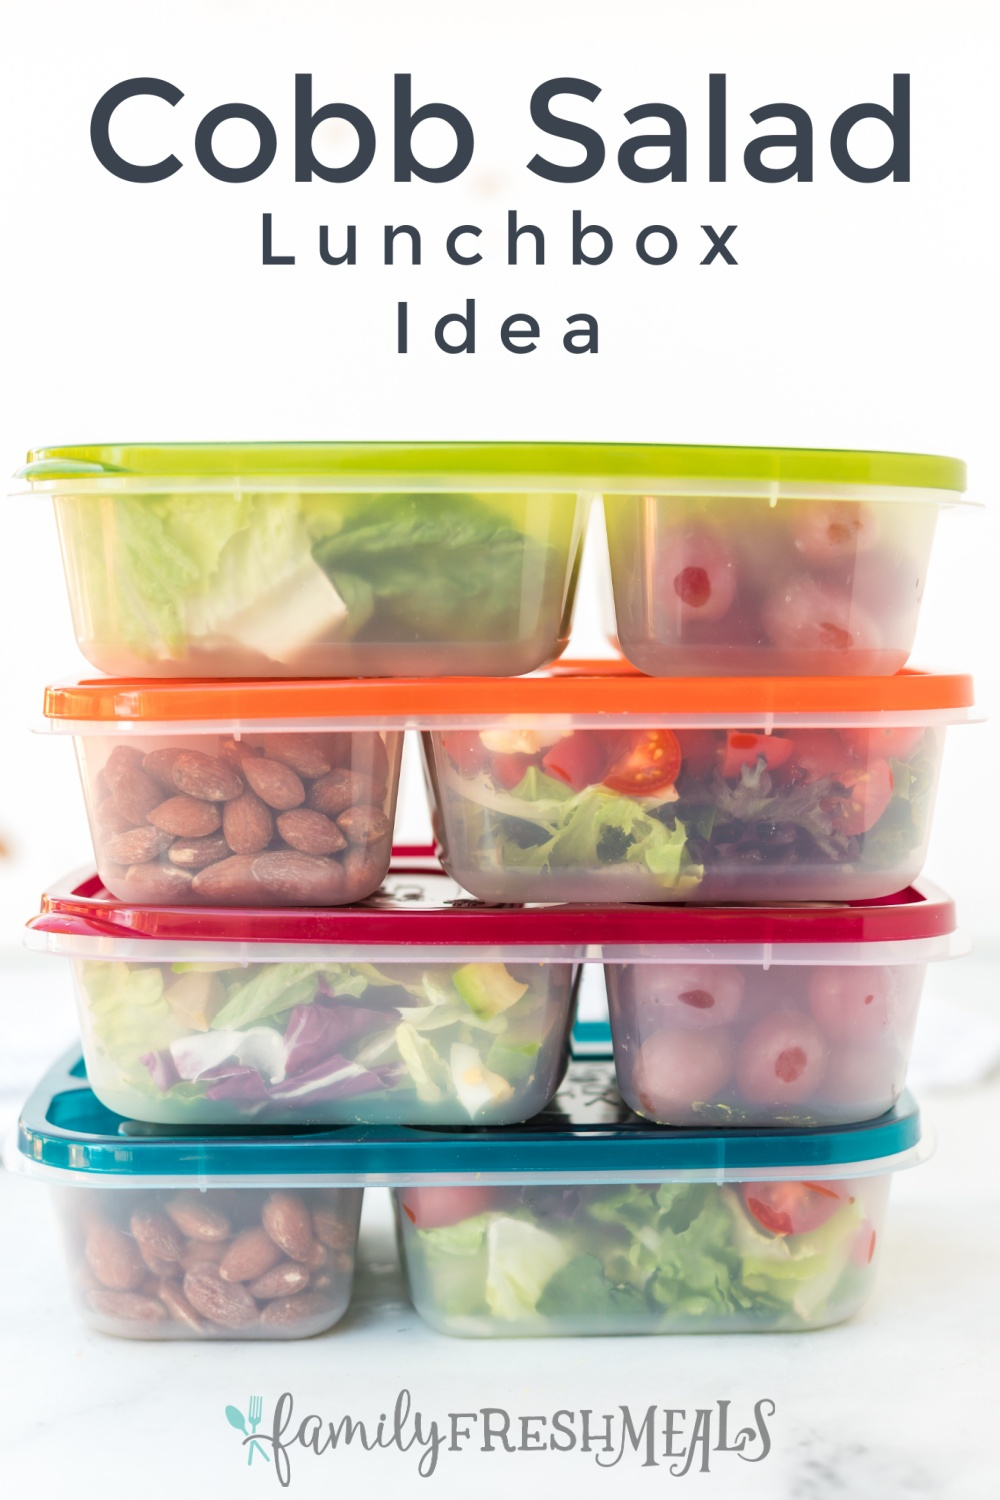 4 lunchboxes stacked on top of each other with words on top saying Cobb Salad Lunchbox Idea